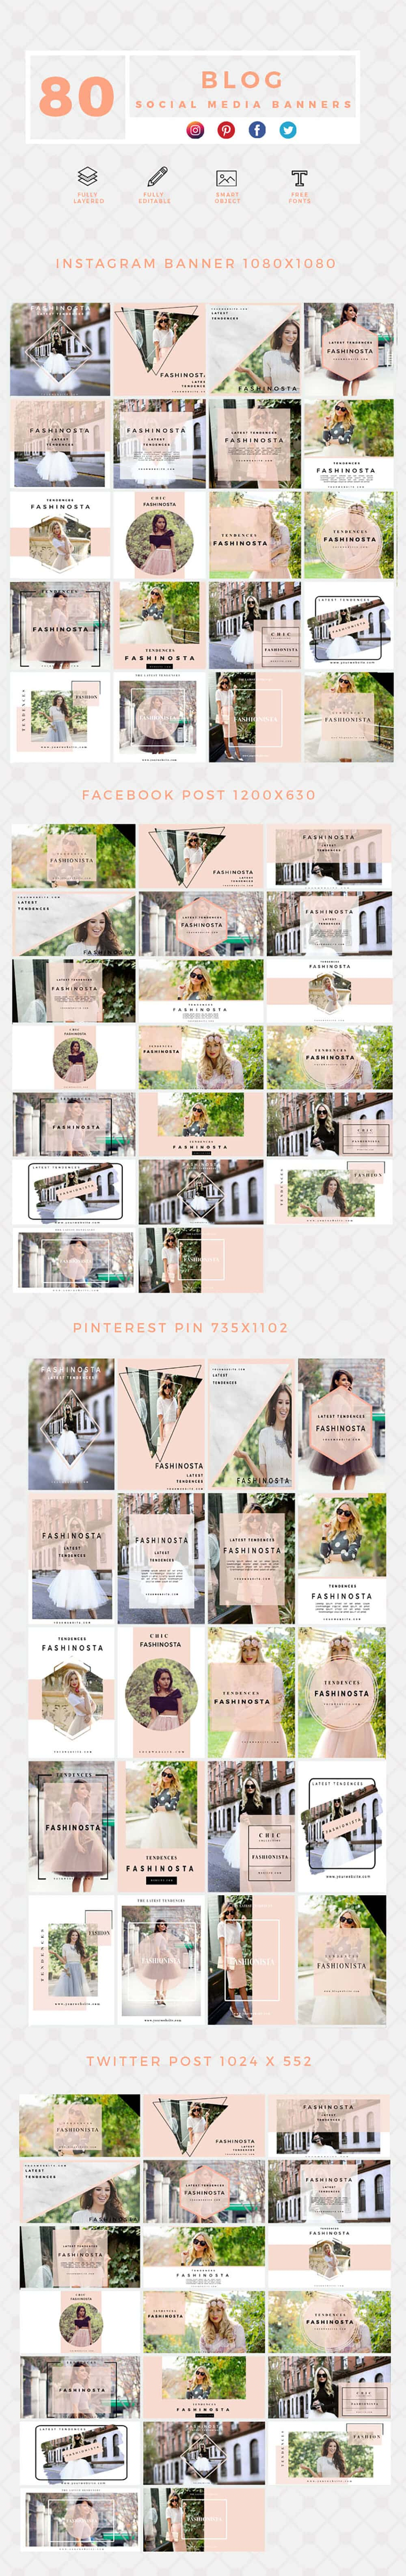 640 Templates for Facebook, Instagram, Twitter, Pinterest - $15 - PREVIEW BLOG min